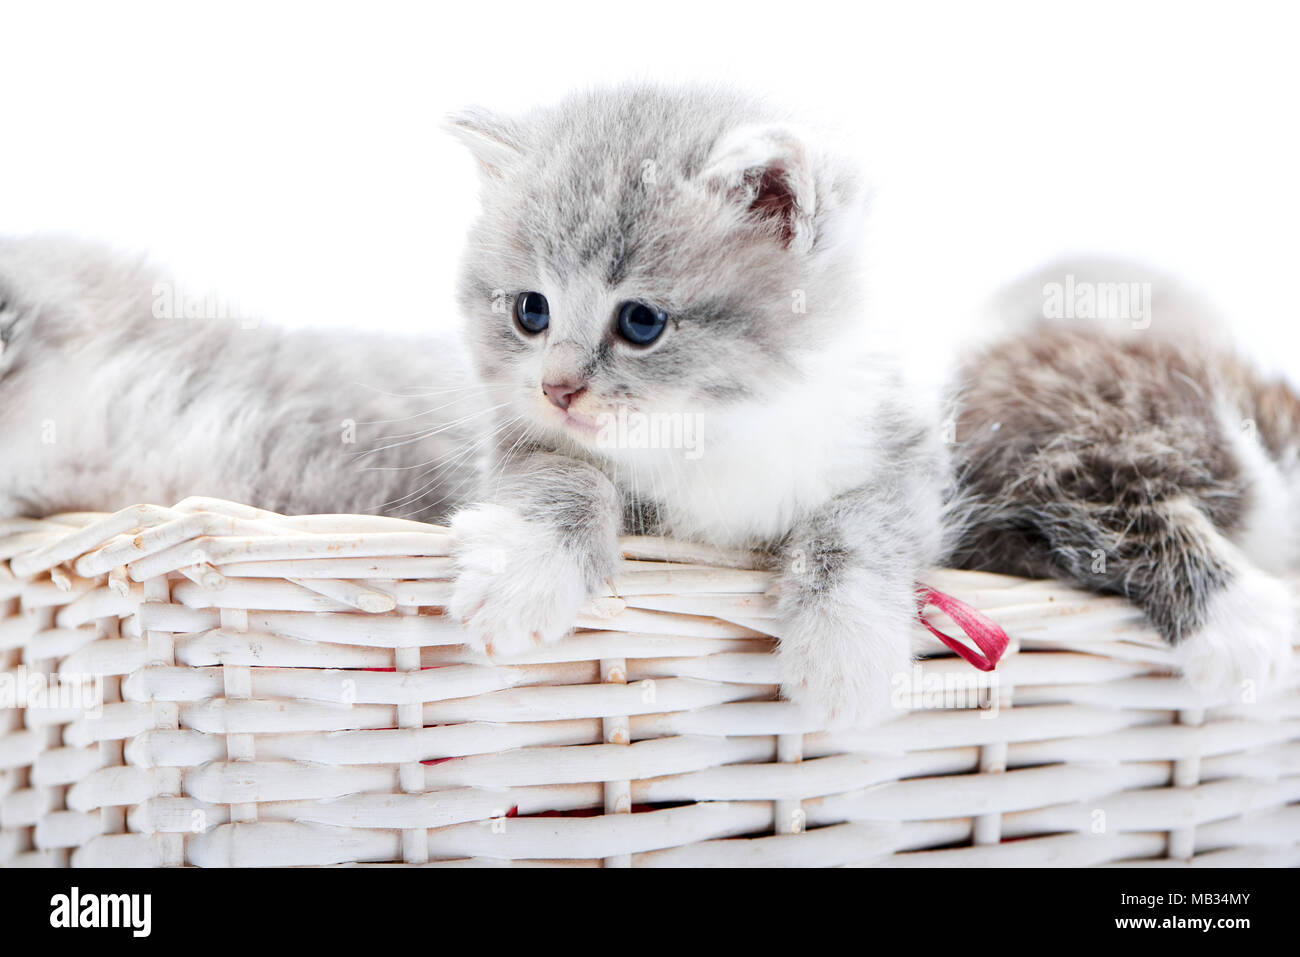 Small Grey Fluffy Adorable Kitten Being Curious And Looking To The Side While Others Playing Together In White Wicker Basket While Posing In White Photo